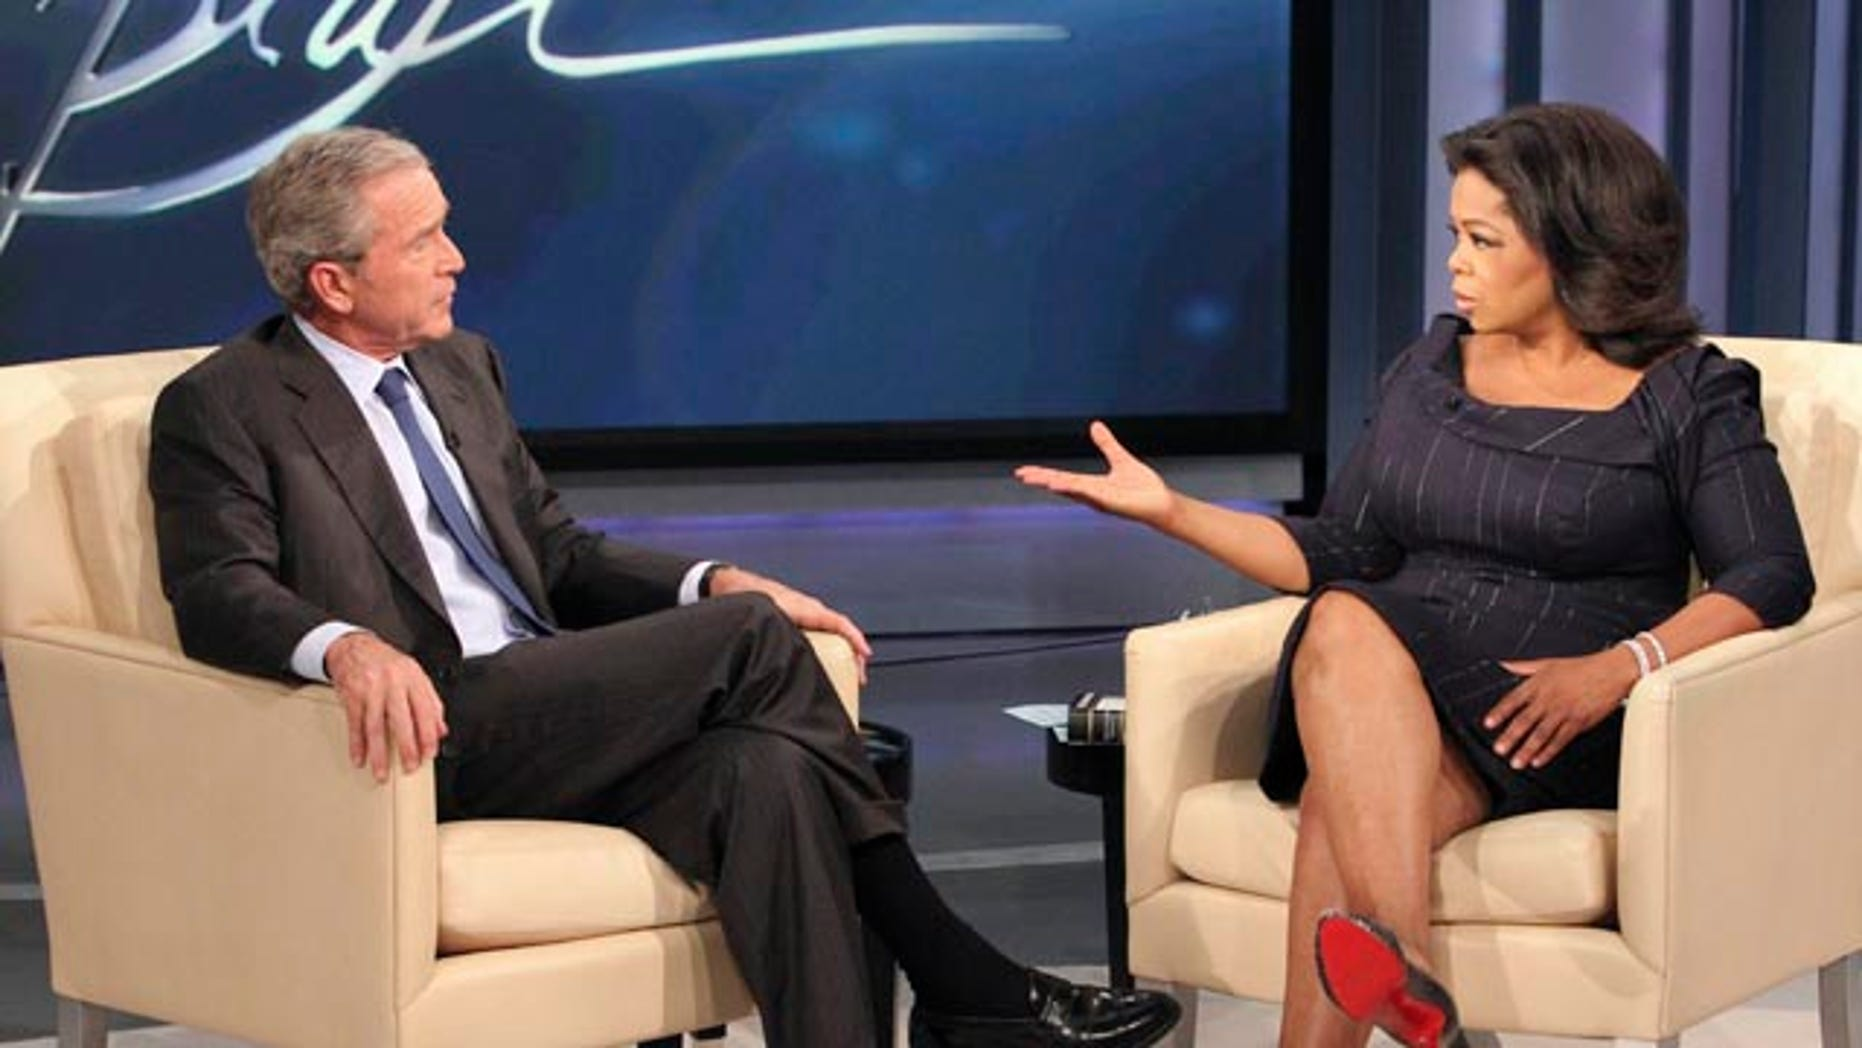 Oct. 28: Bush during taping of 'The Oprah Winfrey Show' at Harpo Studios in Chicago. The show aired nationally on Nov. 9.